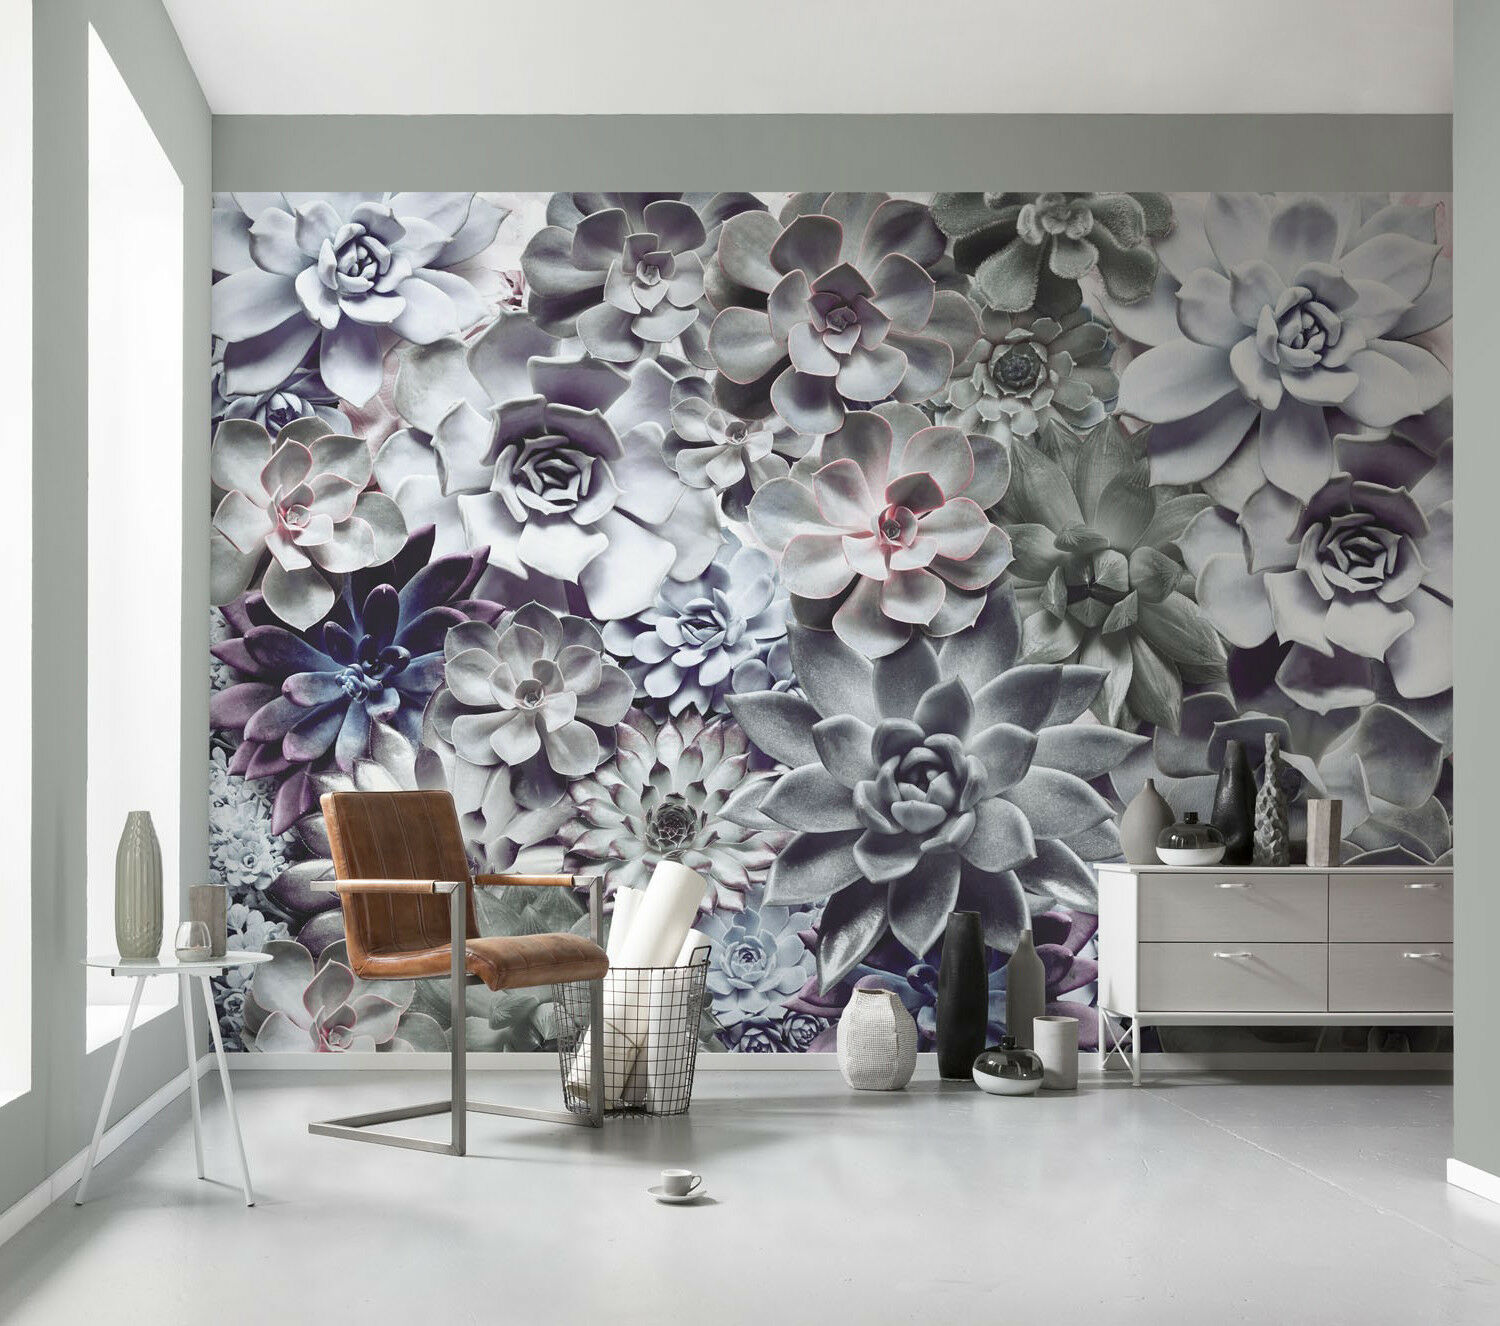 GIANT Wall Mural Photo Wallpaper SHADES lila FLOWERS Sitting Room Decor